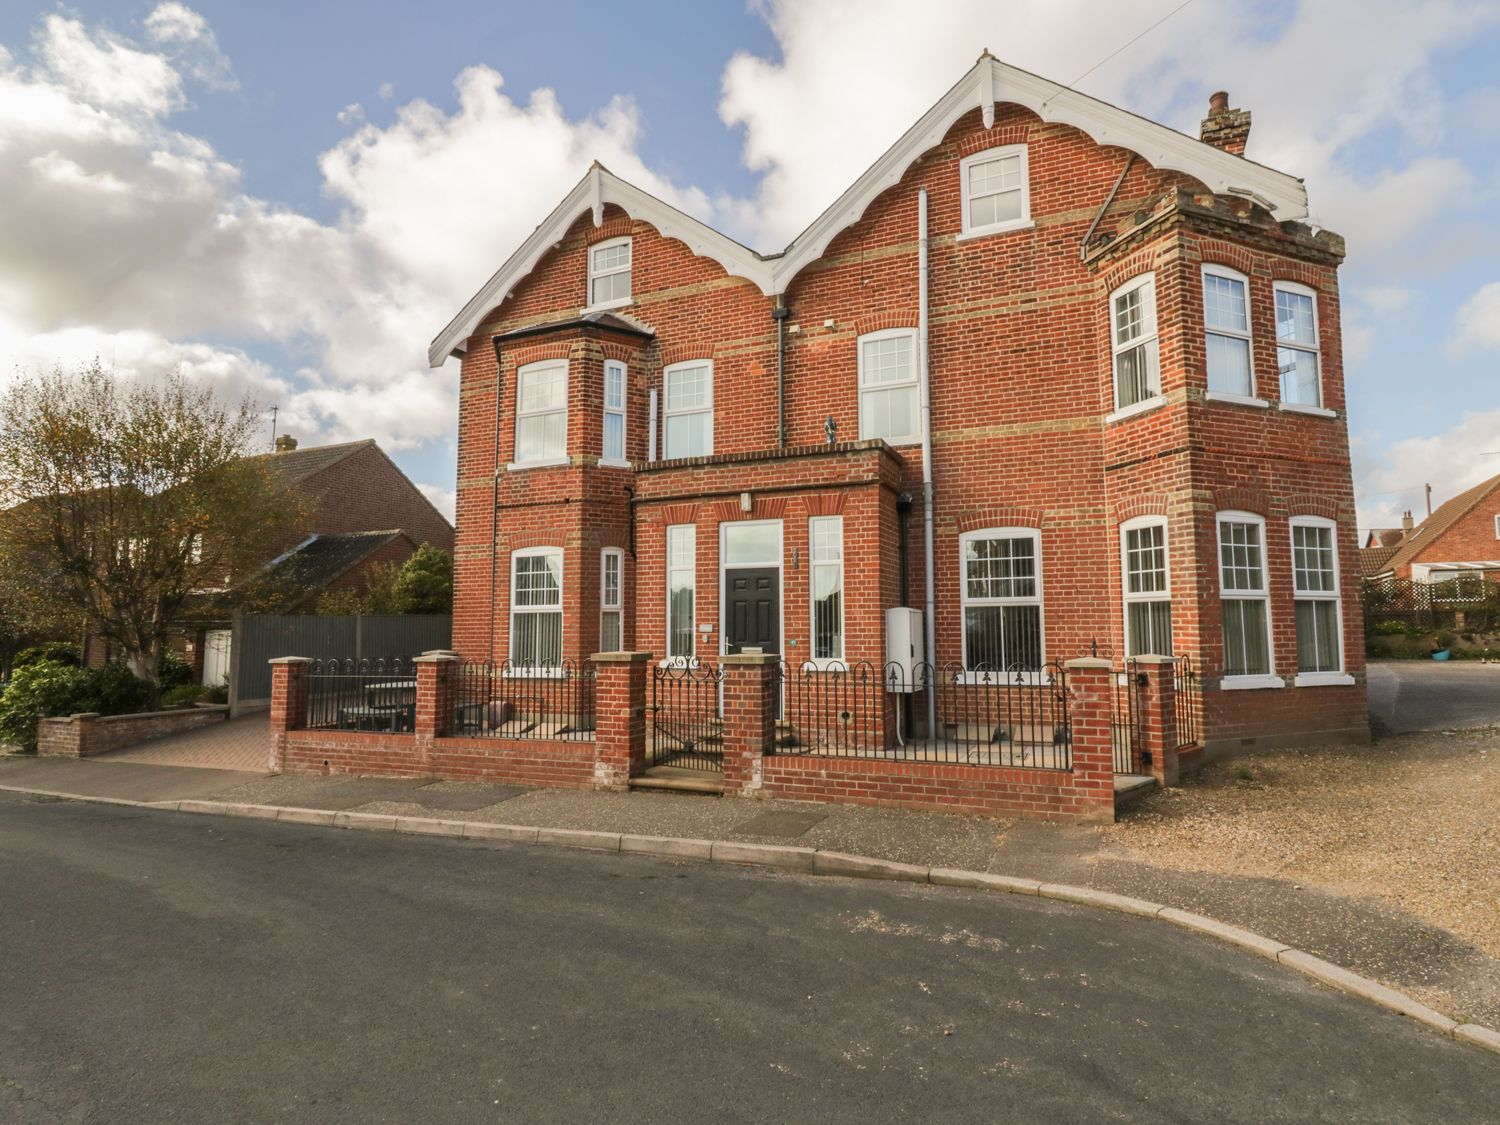 St Edmunds in Mundesley - sleeps 8 people